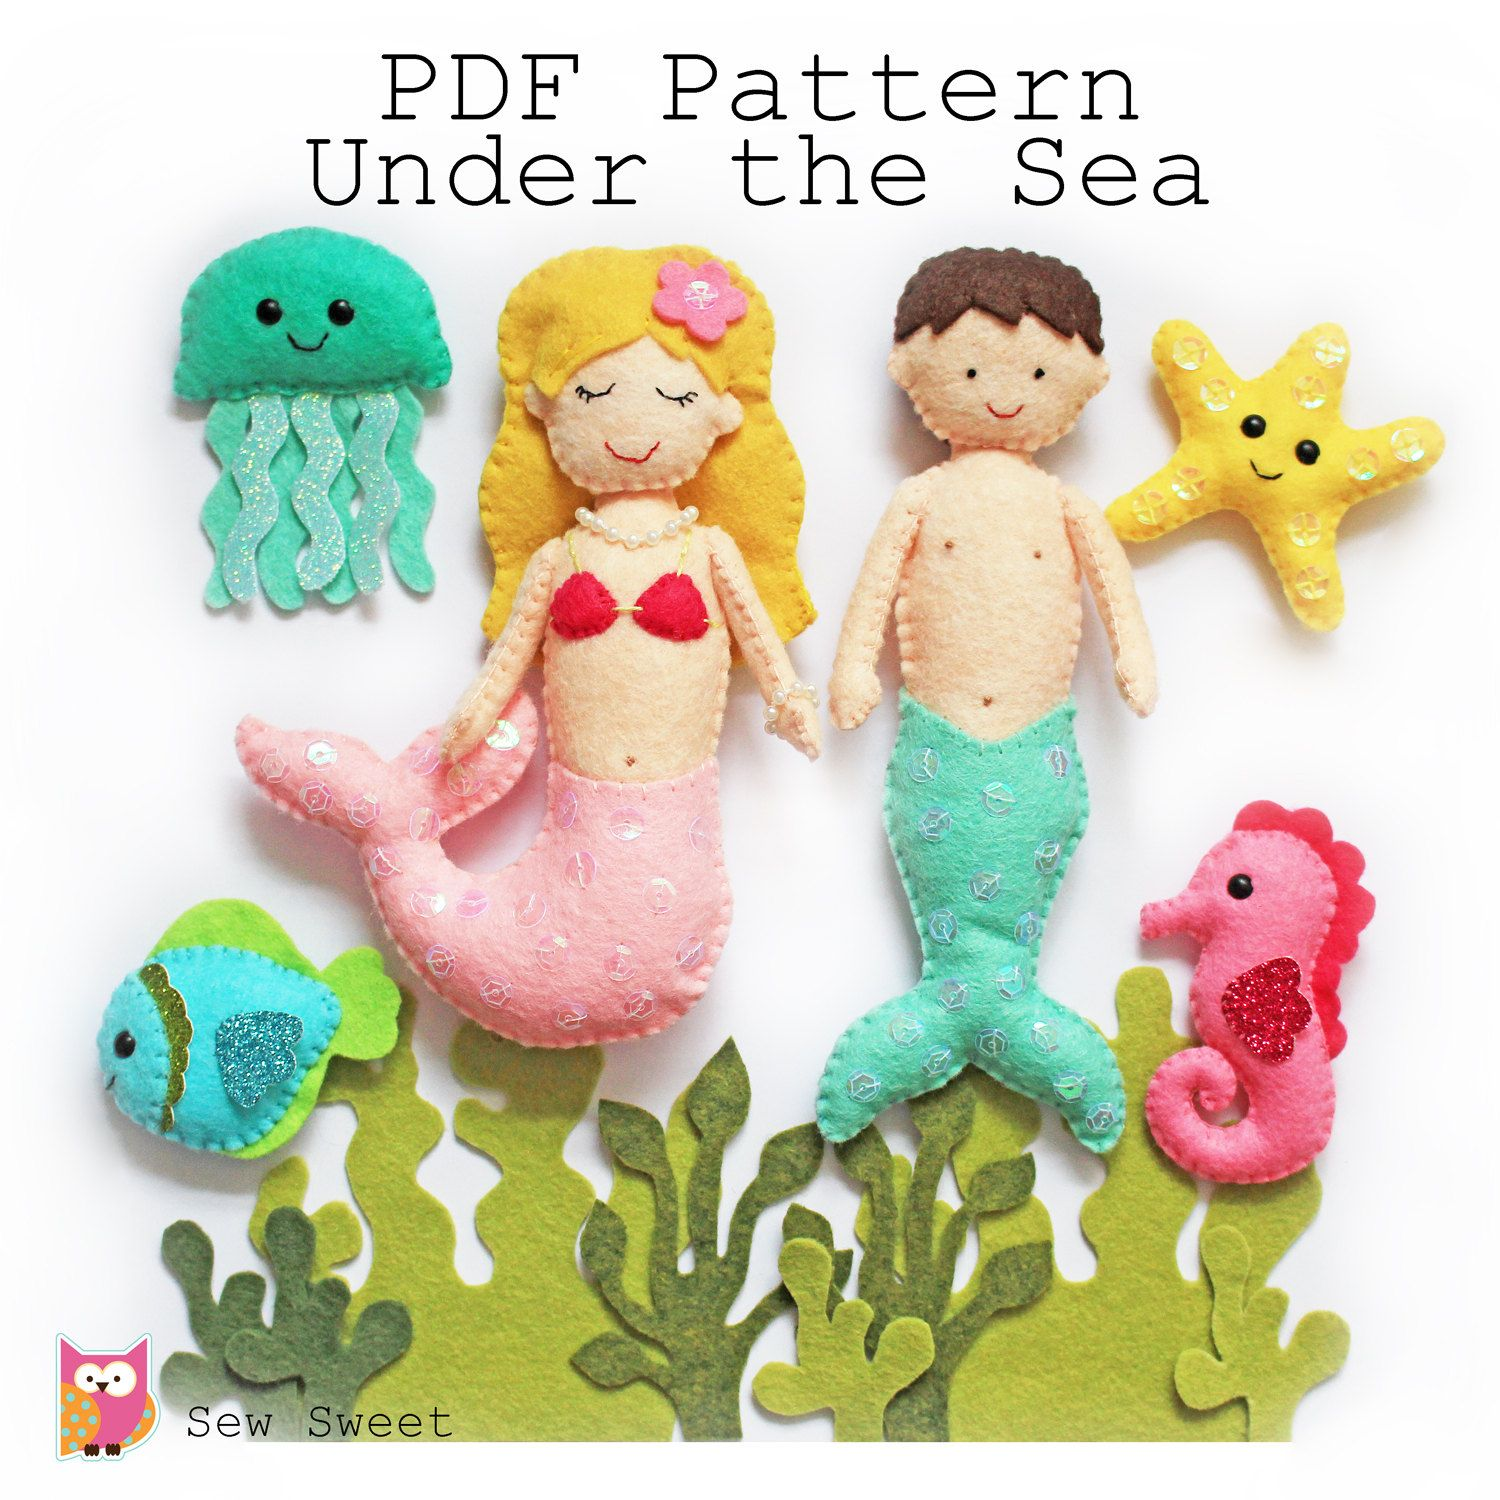 Under the sea felt softies pdf pattern sew your own mermaid under the sea felt softies pdf pattern sew your own mermaid merman jeuxipadfo Image collections